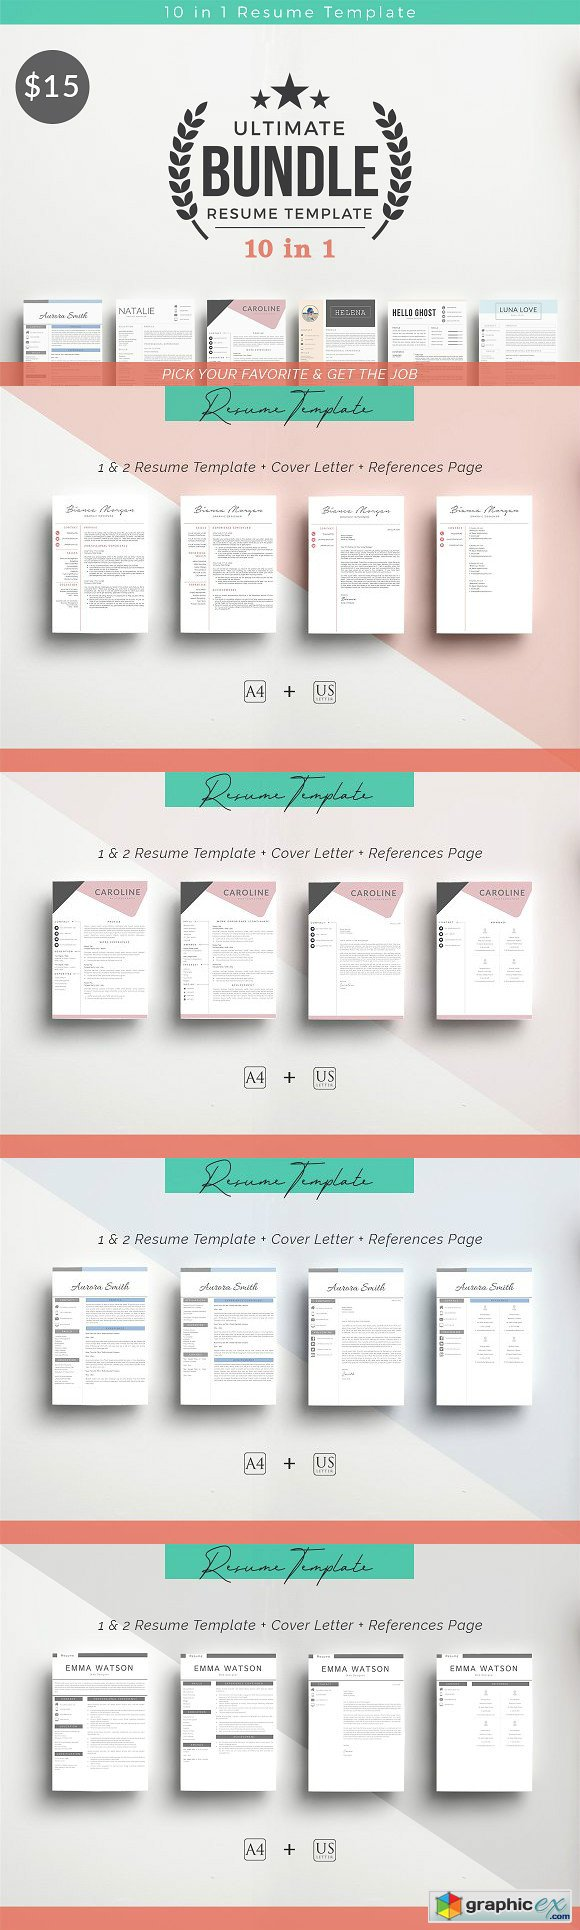 10 in 1 Resume Templates Bundle